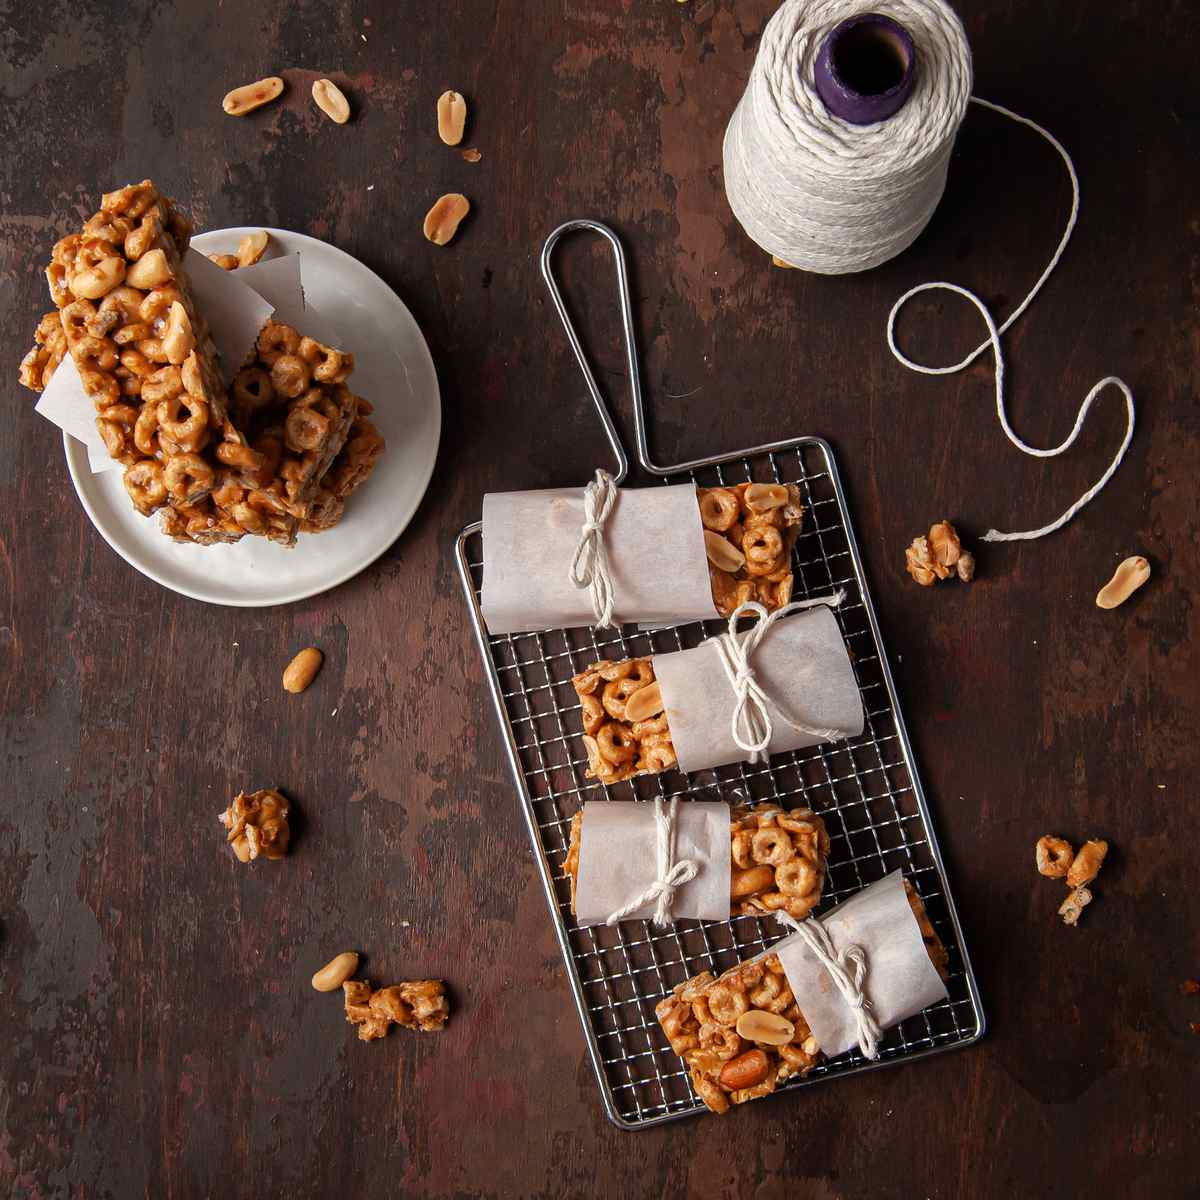 Peanut Butter Cheerio Bars wrapped in parchment